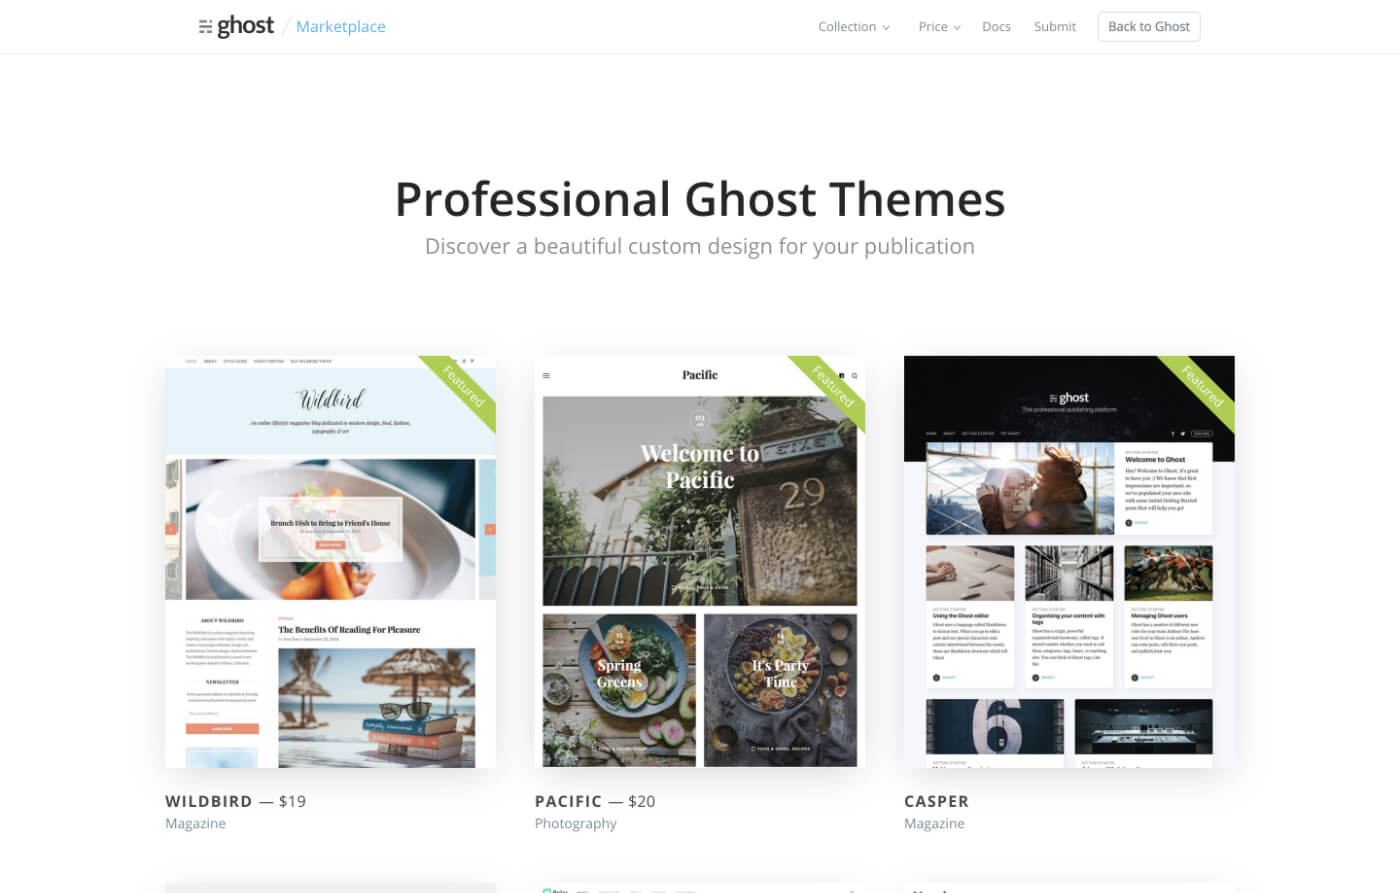 Creating a custom theme